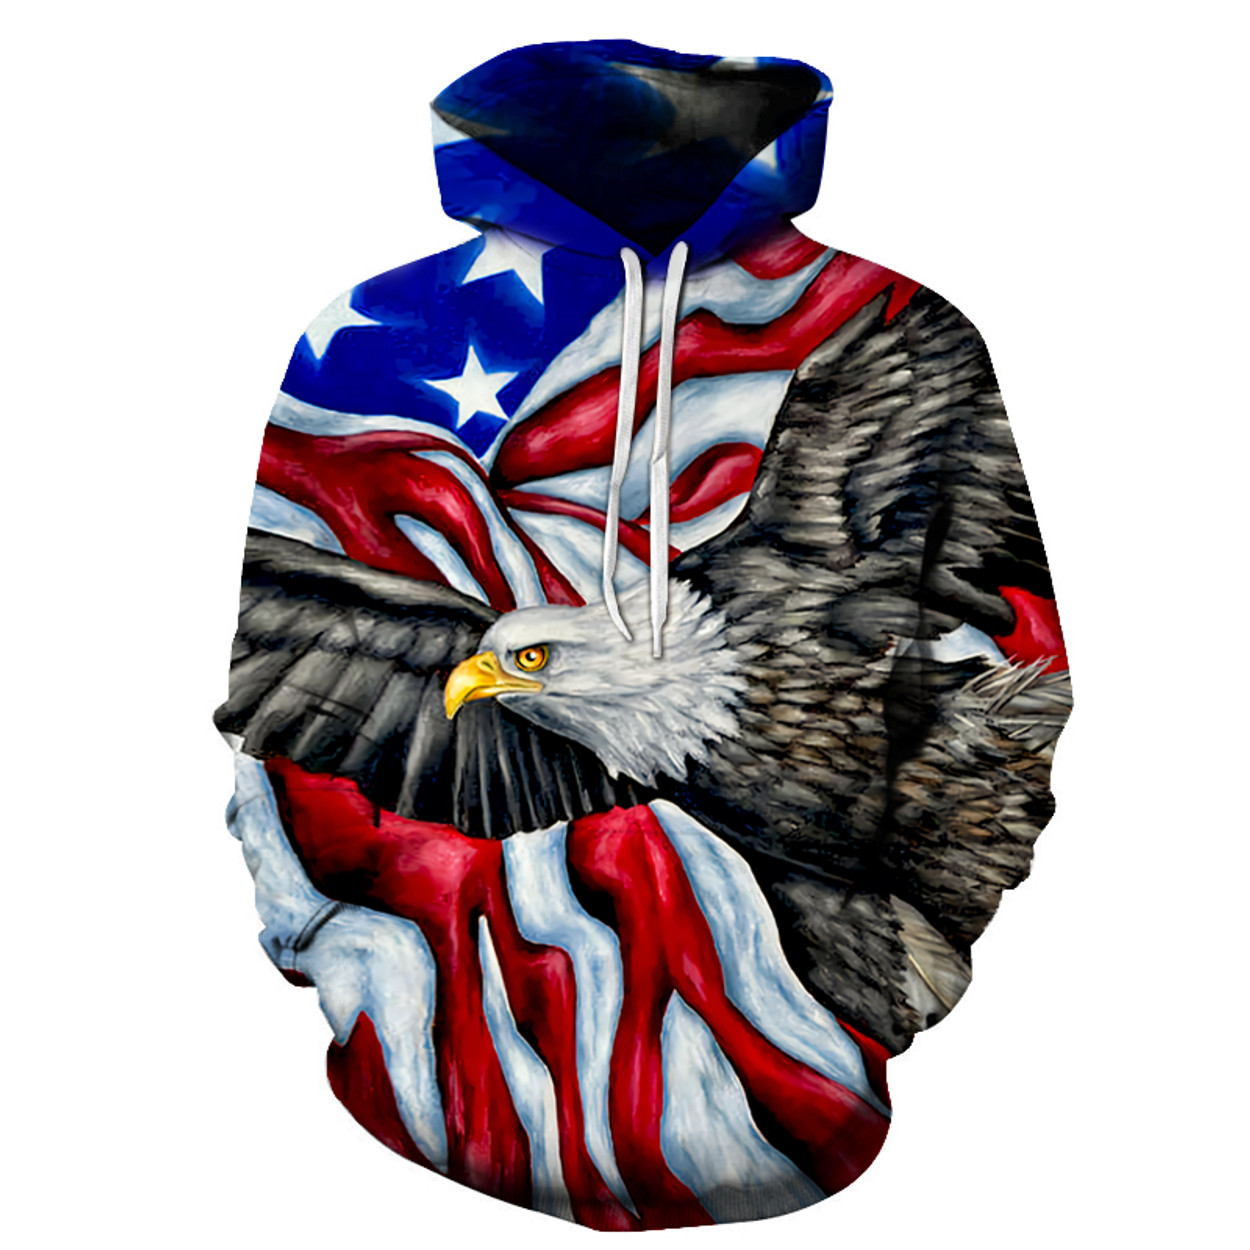 19f691c01d55   (TRENDY-NEW-MENS   WOMENS 3-D CUSTOM-DETAILED-GRAPHIC-PRINTED -HOODIES BIG-BEAUTIFUL-3D-PATRIOTIC-BALD-EAGLE STUNNING-STARS   STRIPES-FLAG  ...